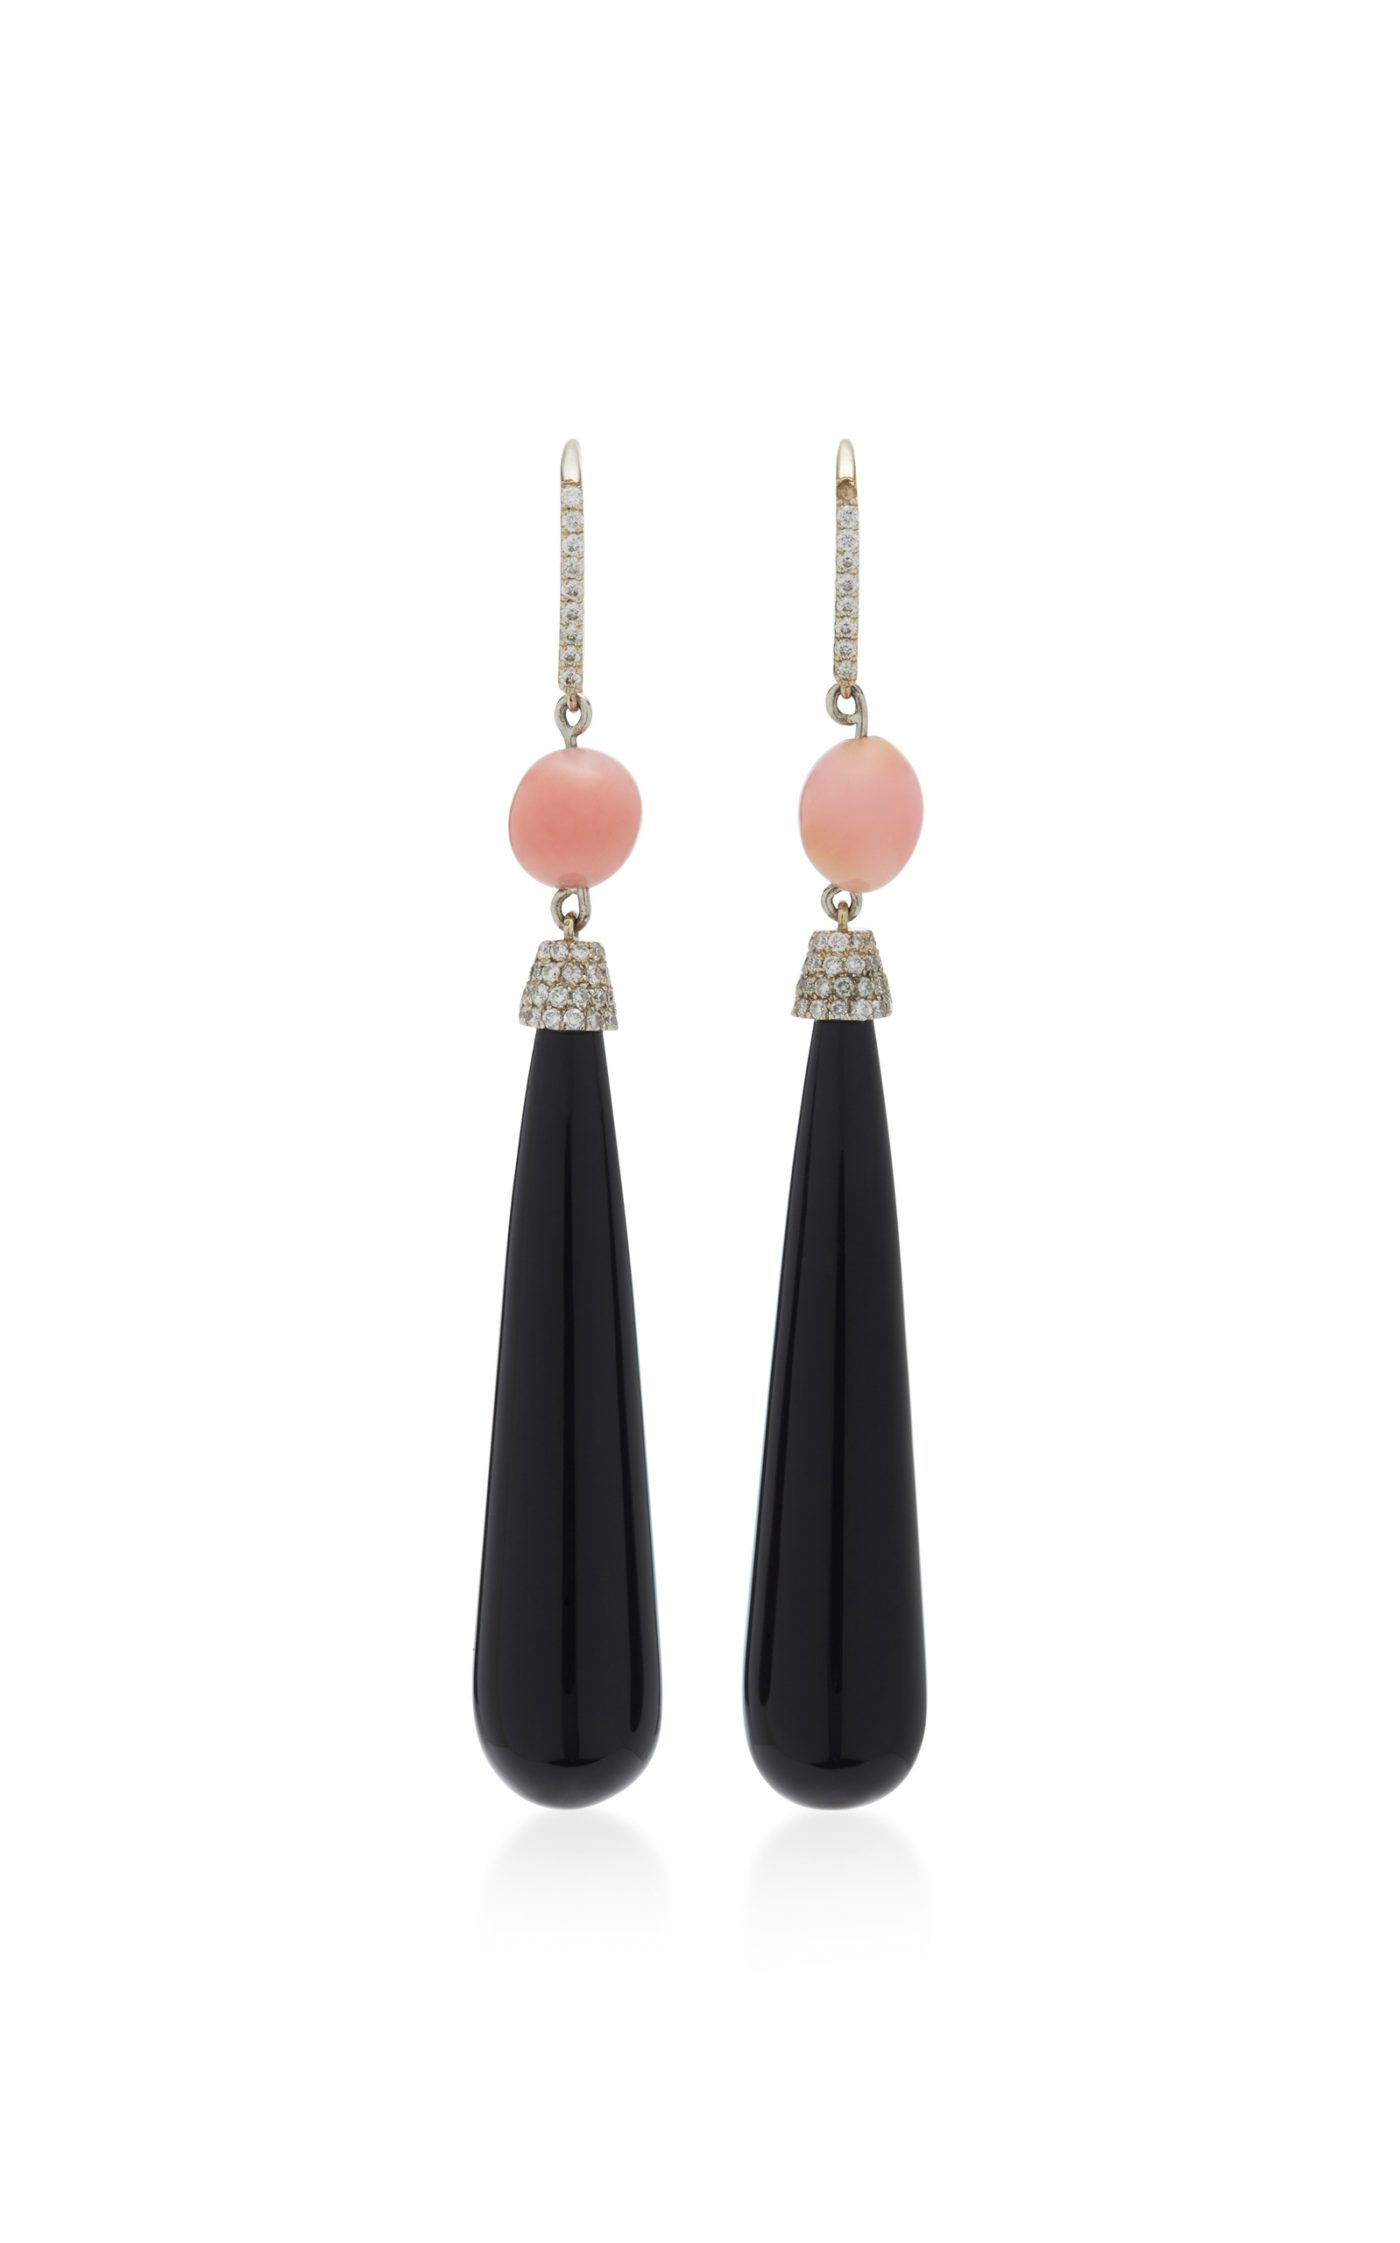 Susan Foster Conch Pearl Earrings